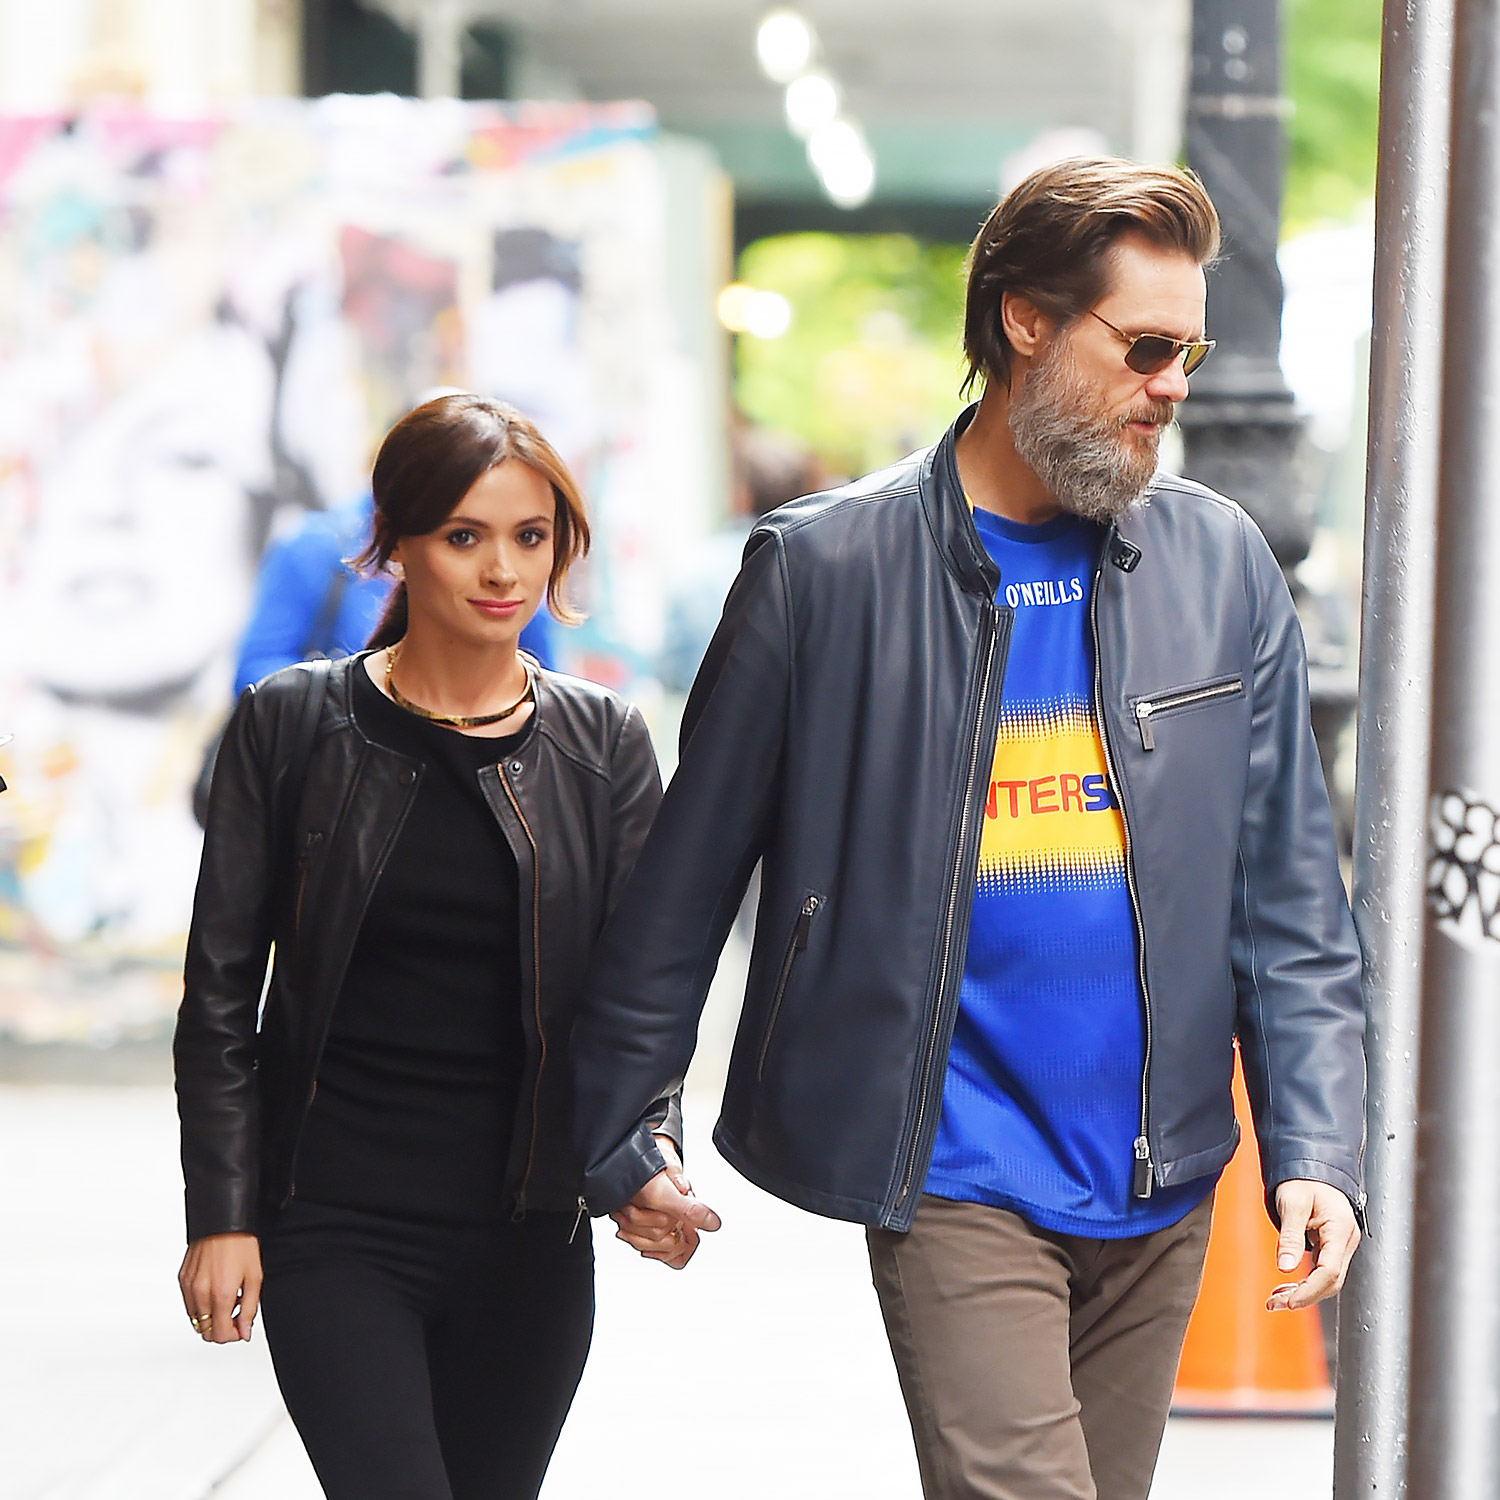 Jim Carrey and his girlfriend hold hands in SoHo